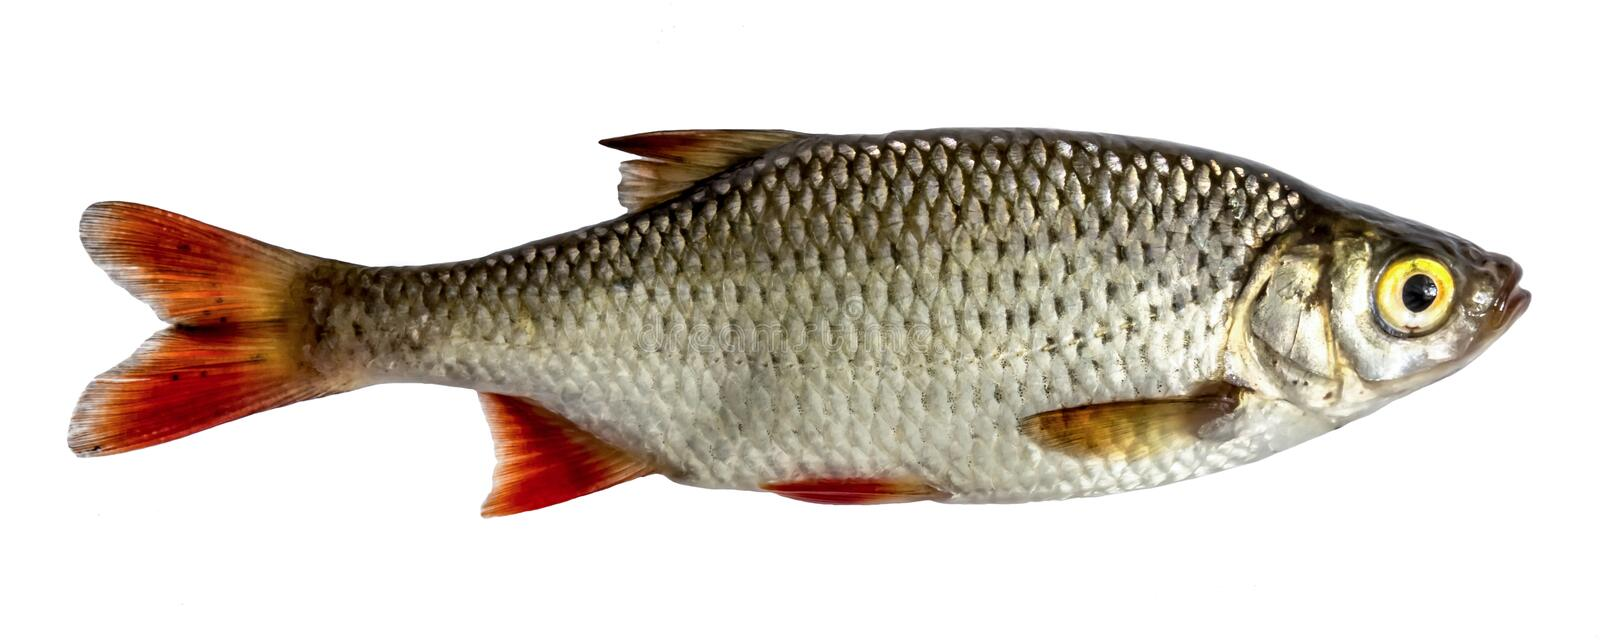 Download Isolated Rudd , A Kind Of Fish From The Side. Live Fish With Flowing Fins. River Fish. Stock Photo - Image: 83724780